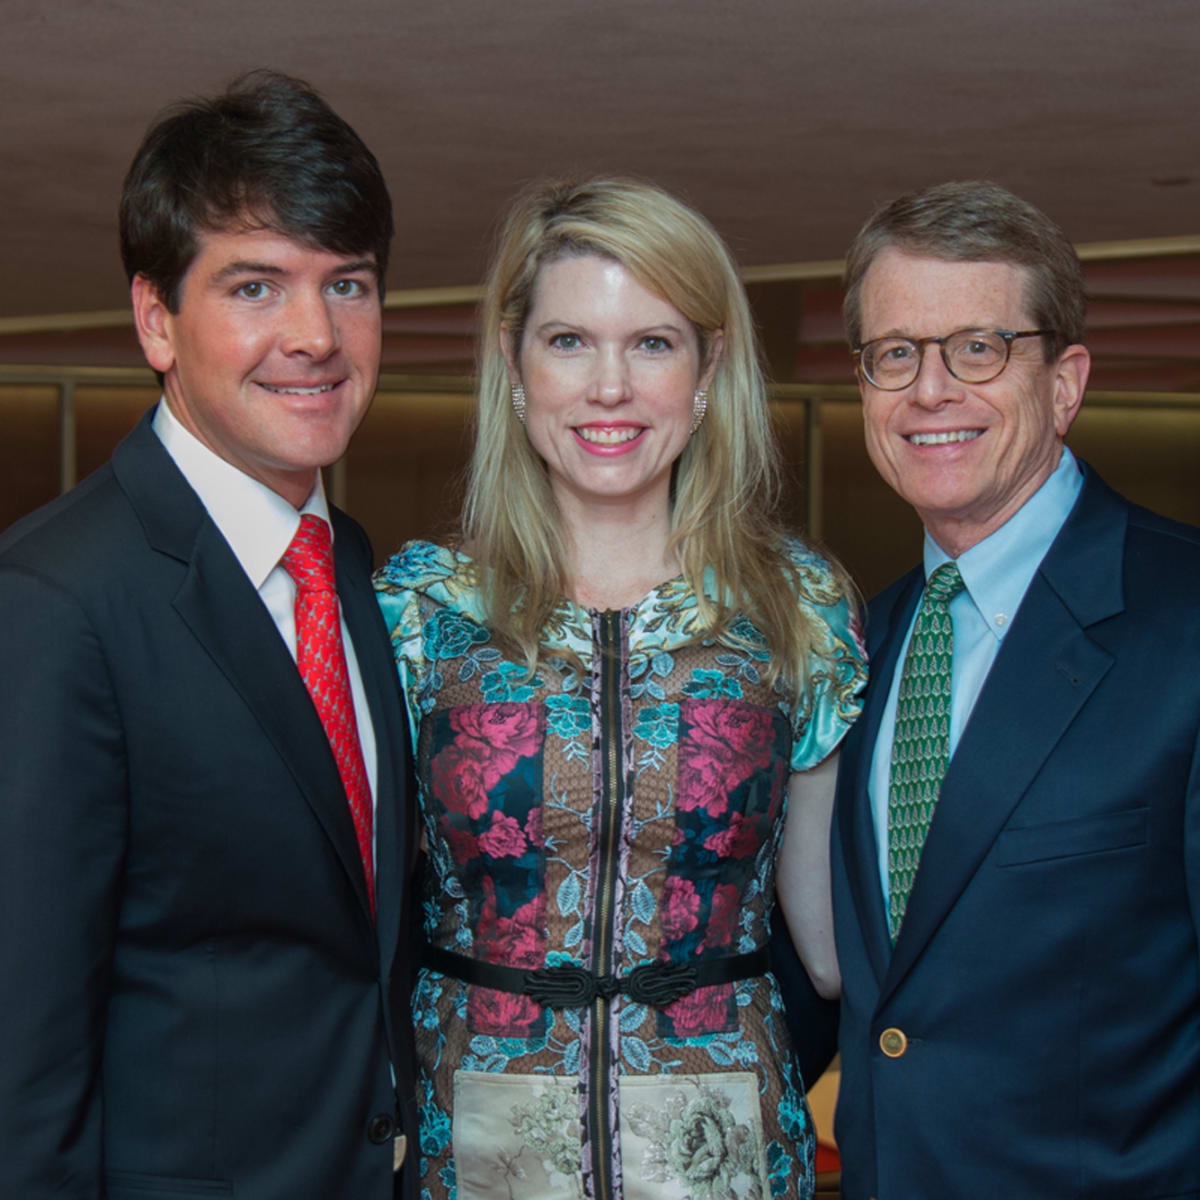 News, Alley Theatre Christmas Tree party, Nov. 2015, Bill Toomey, Courtney Toomey, Dean Gladden